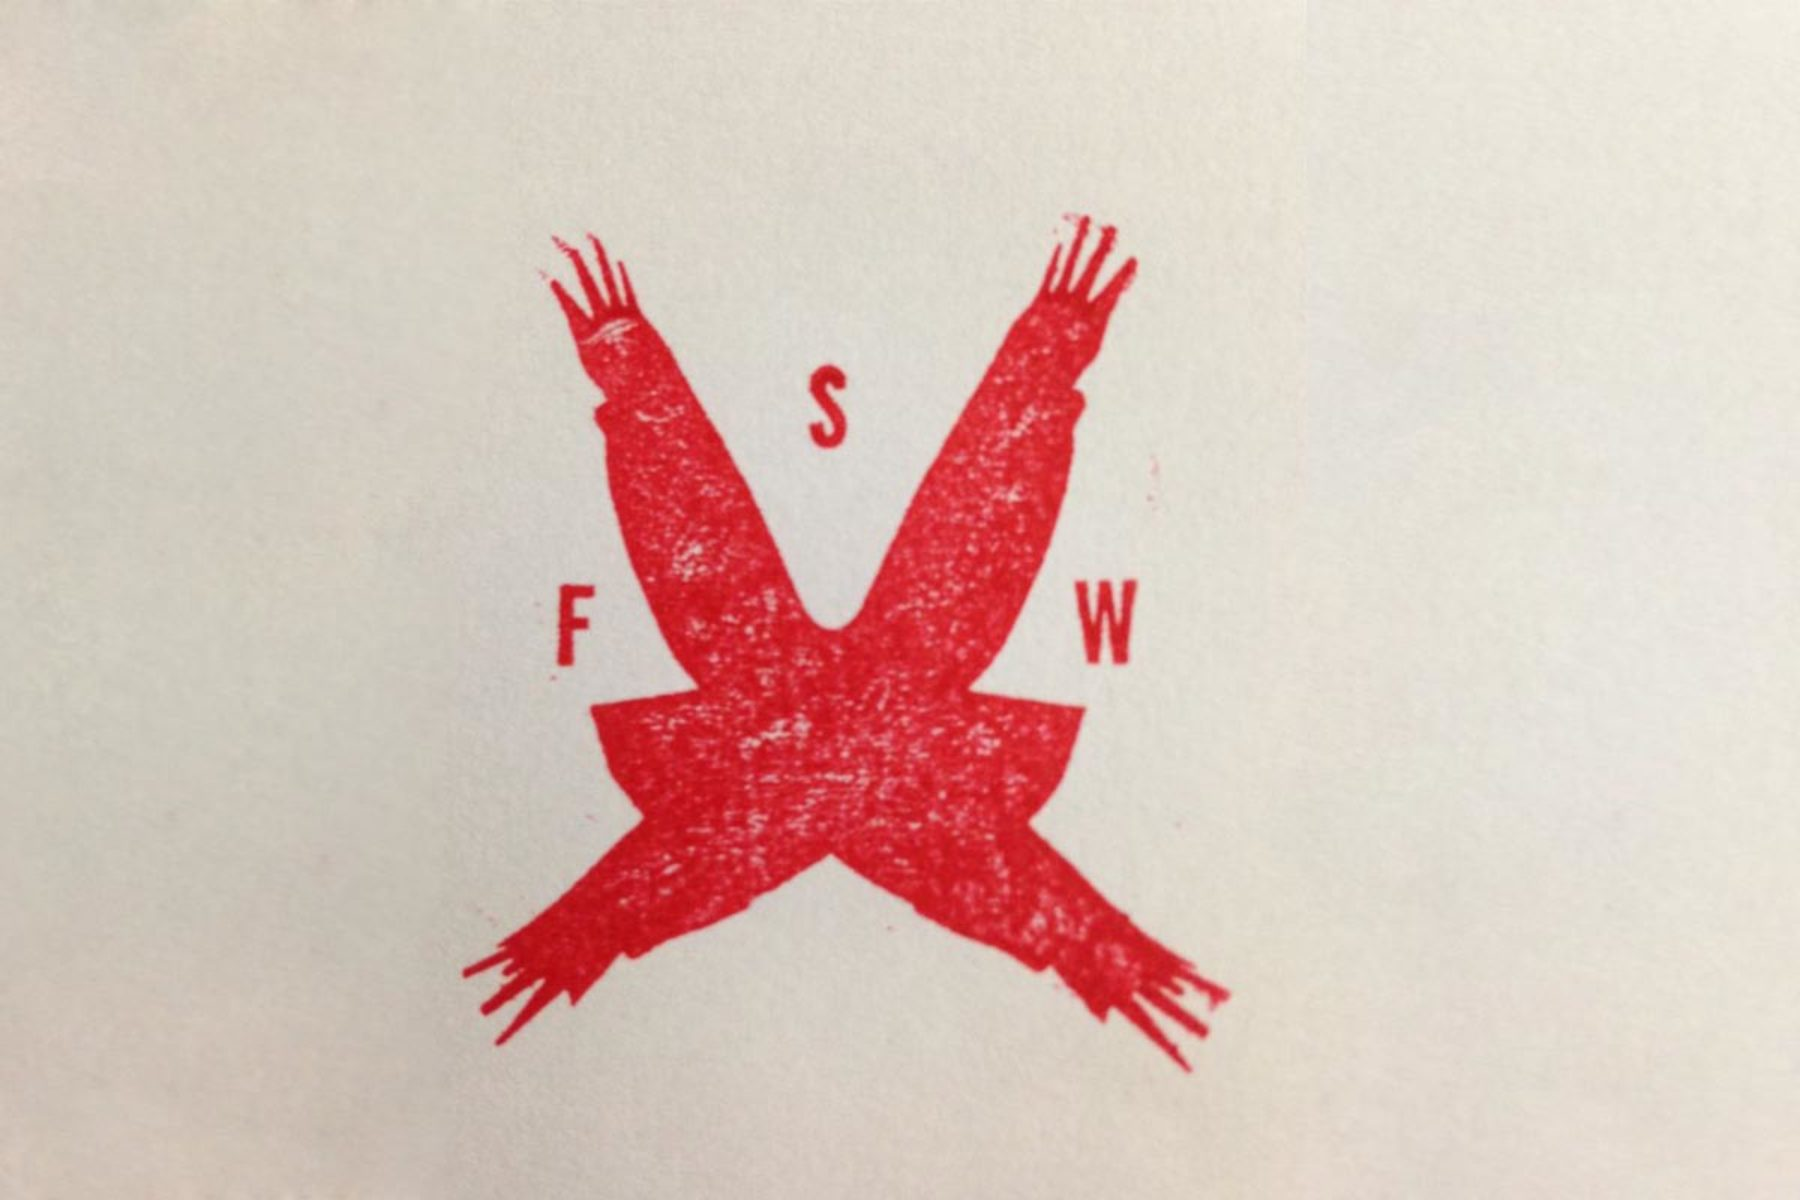 F. Lanaro, FSW, 2013, stamp on paper, 25 x 19 cm